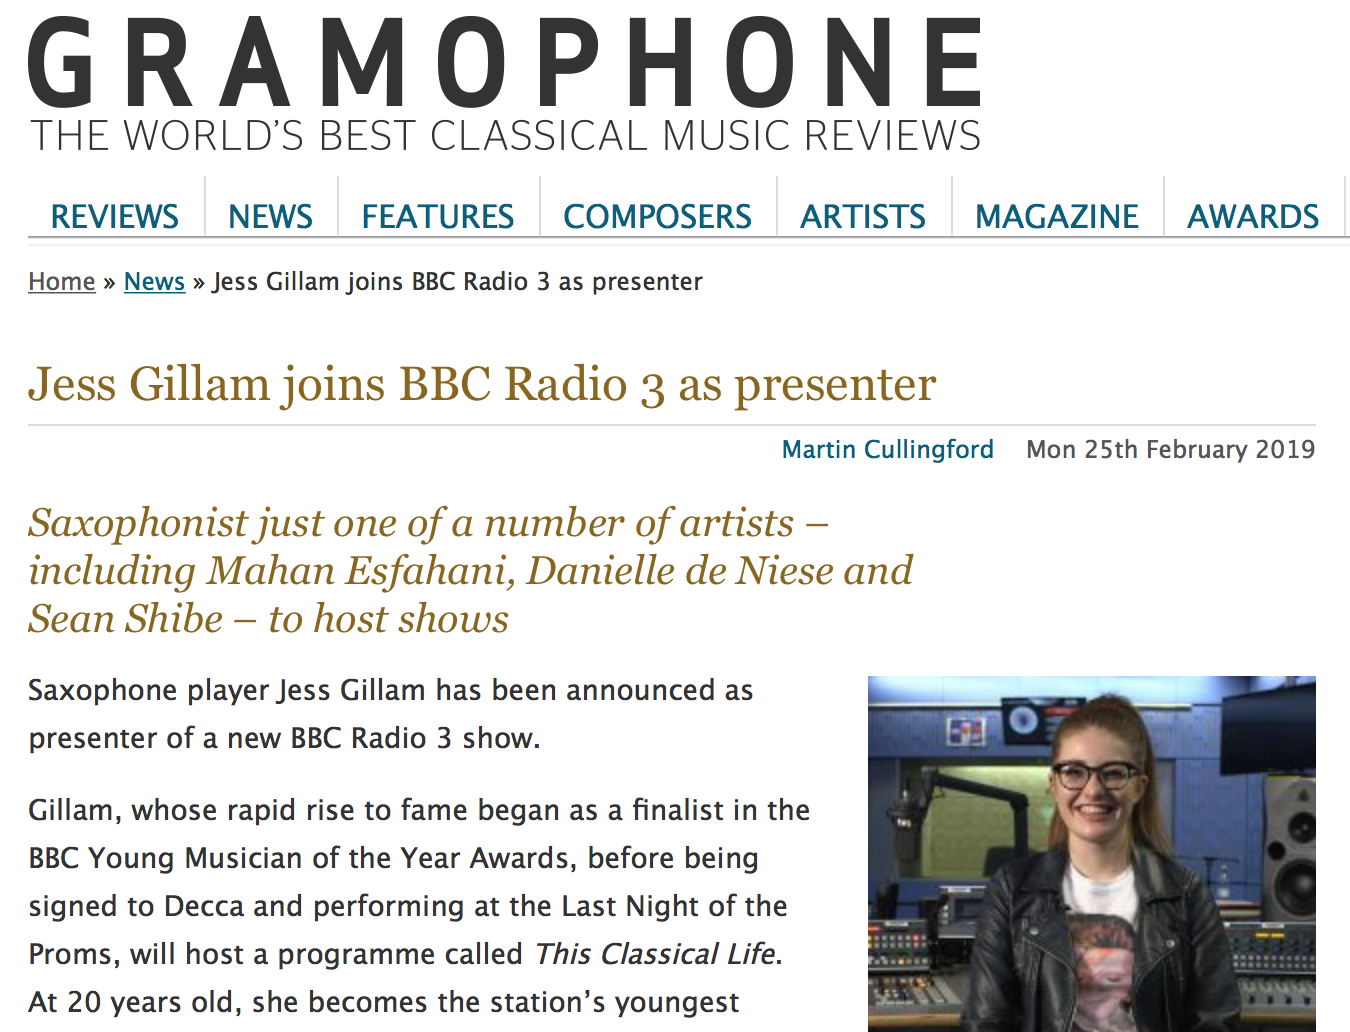 Gramophone: This Classical Life